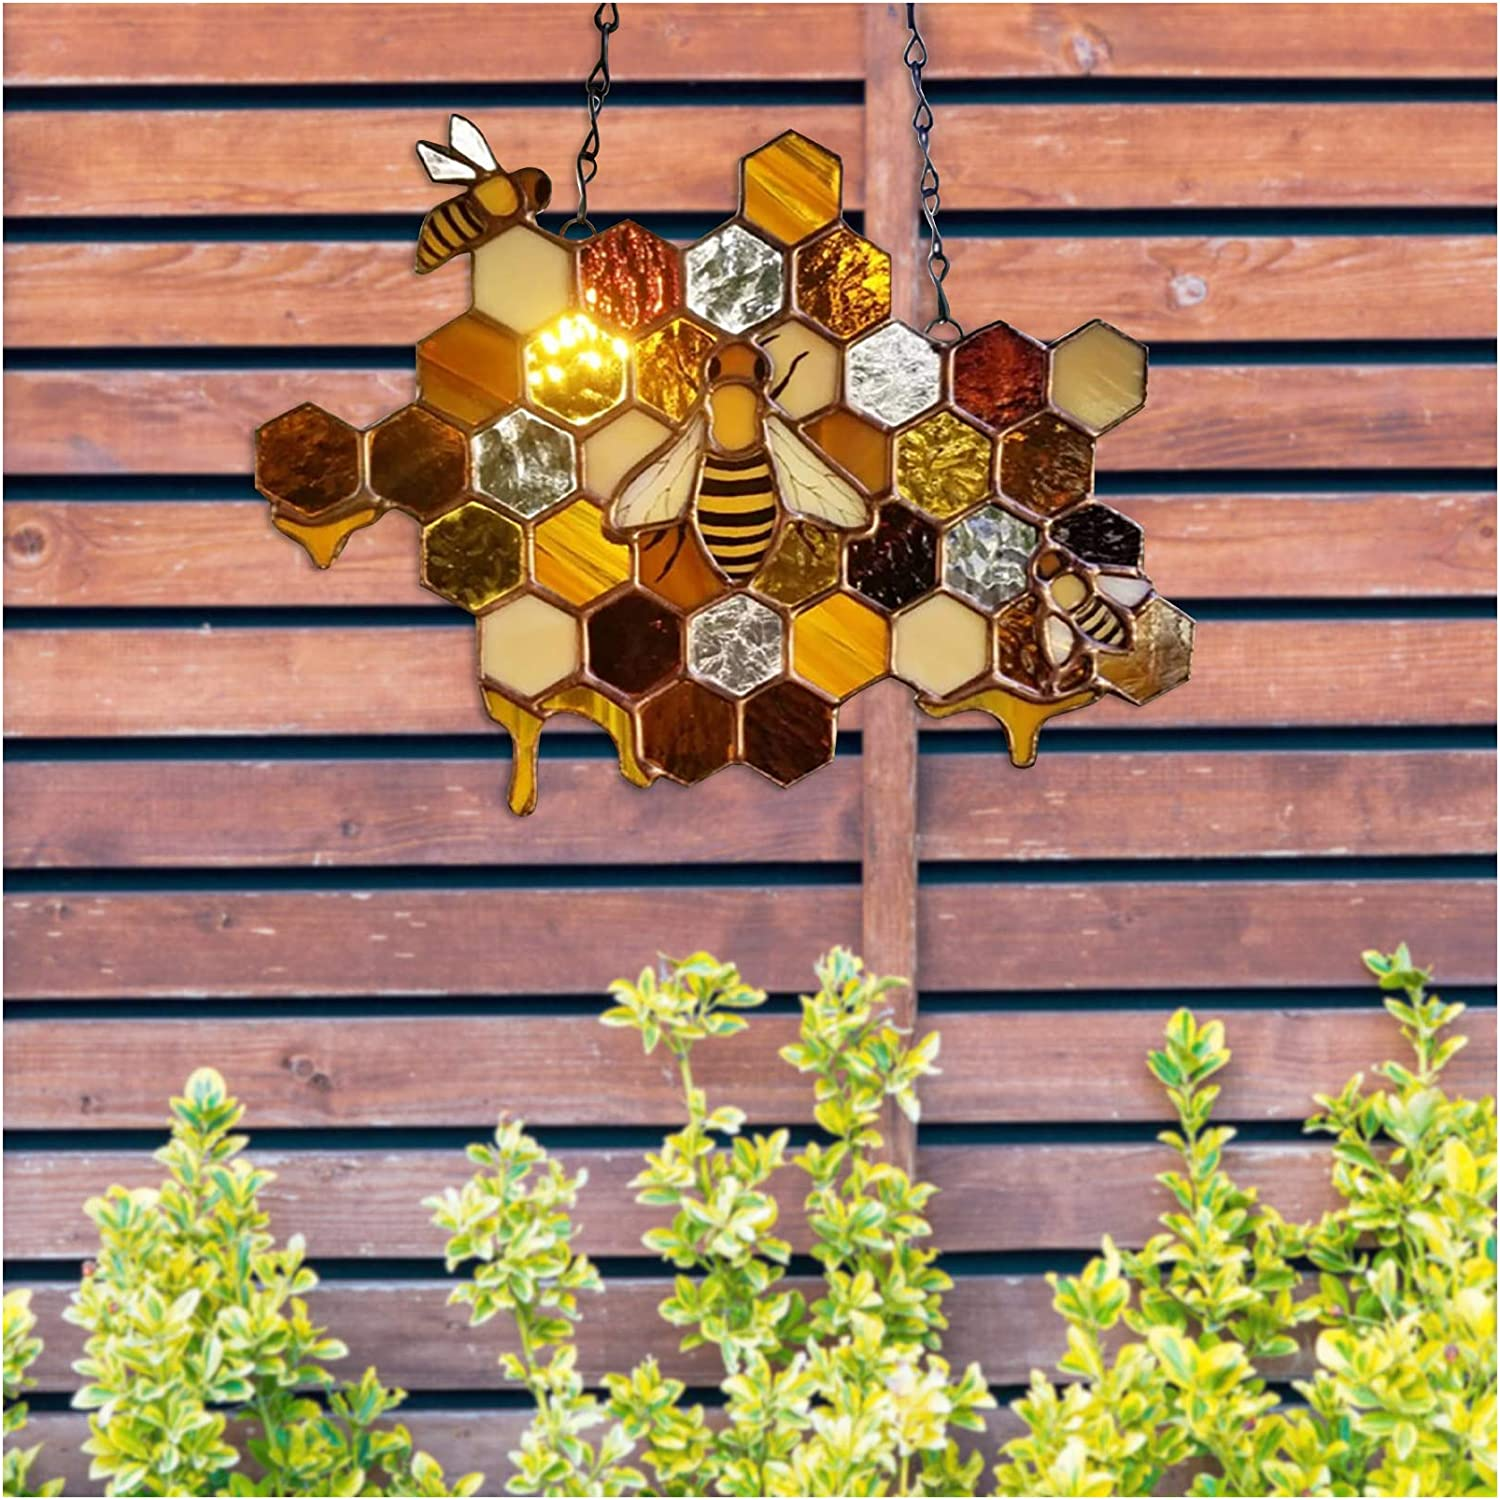 for Front Door Decorations for Restaurant Home Outdoor 10.2x5.9inch 2Pcs Happy Bees Day Sign Hanging Sign Indoor Outdoor Door Hanging Decoration Bee Welcome Sign Front Door Decor